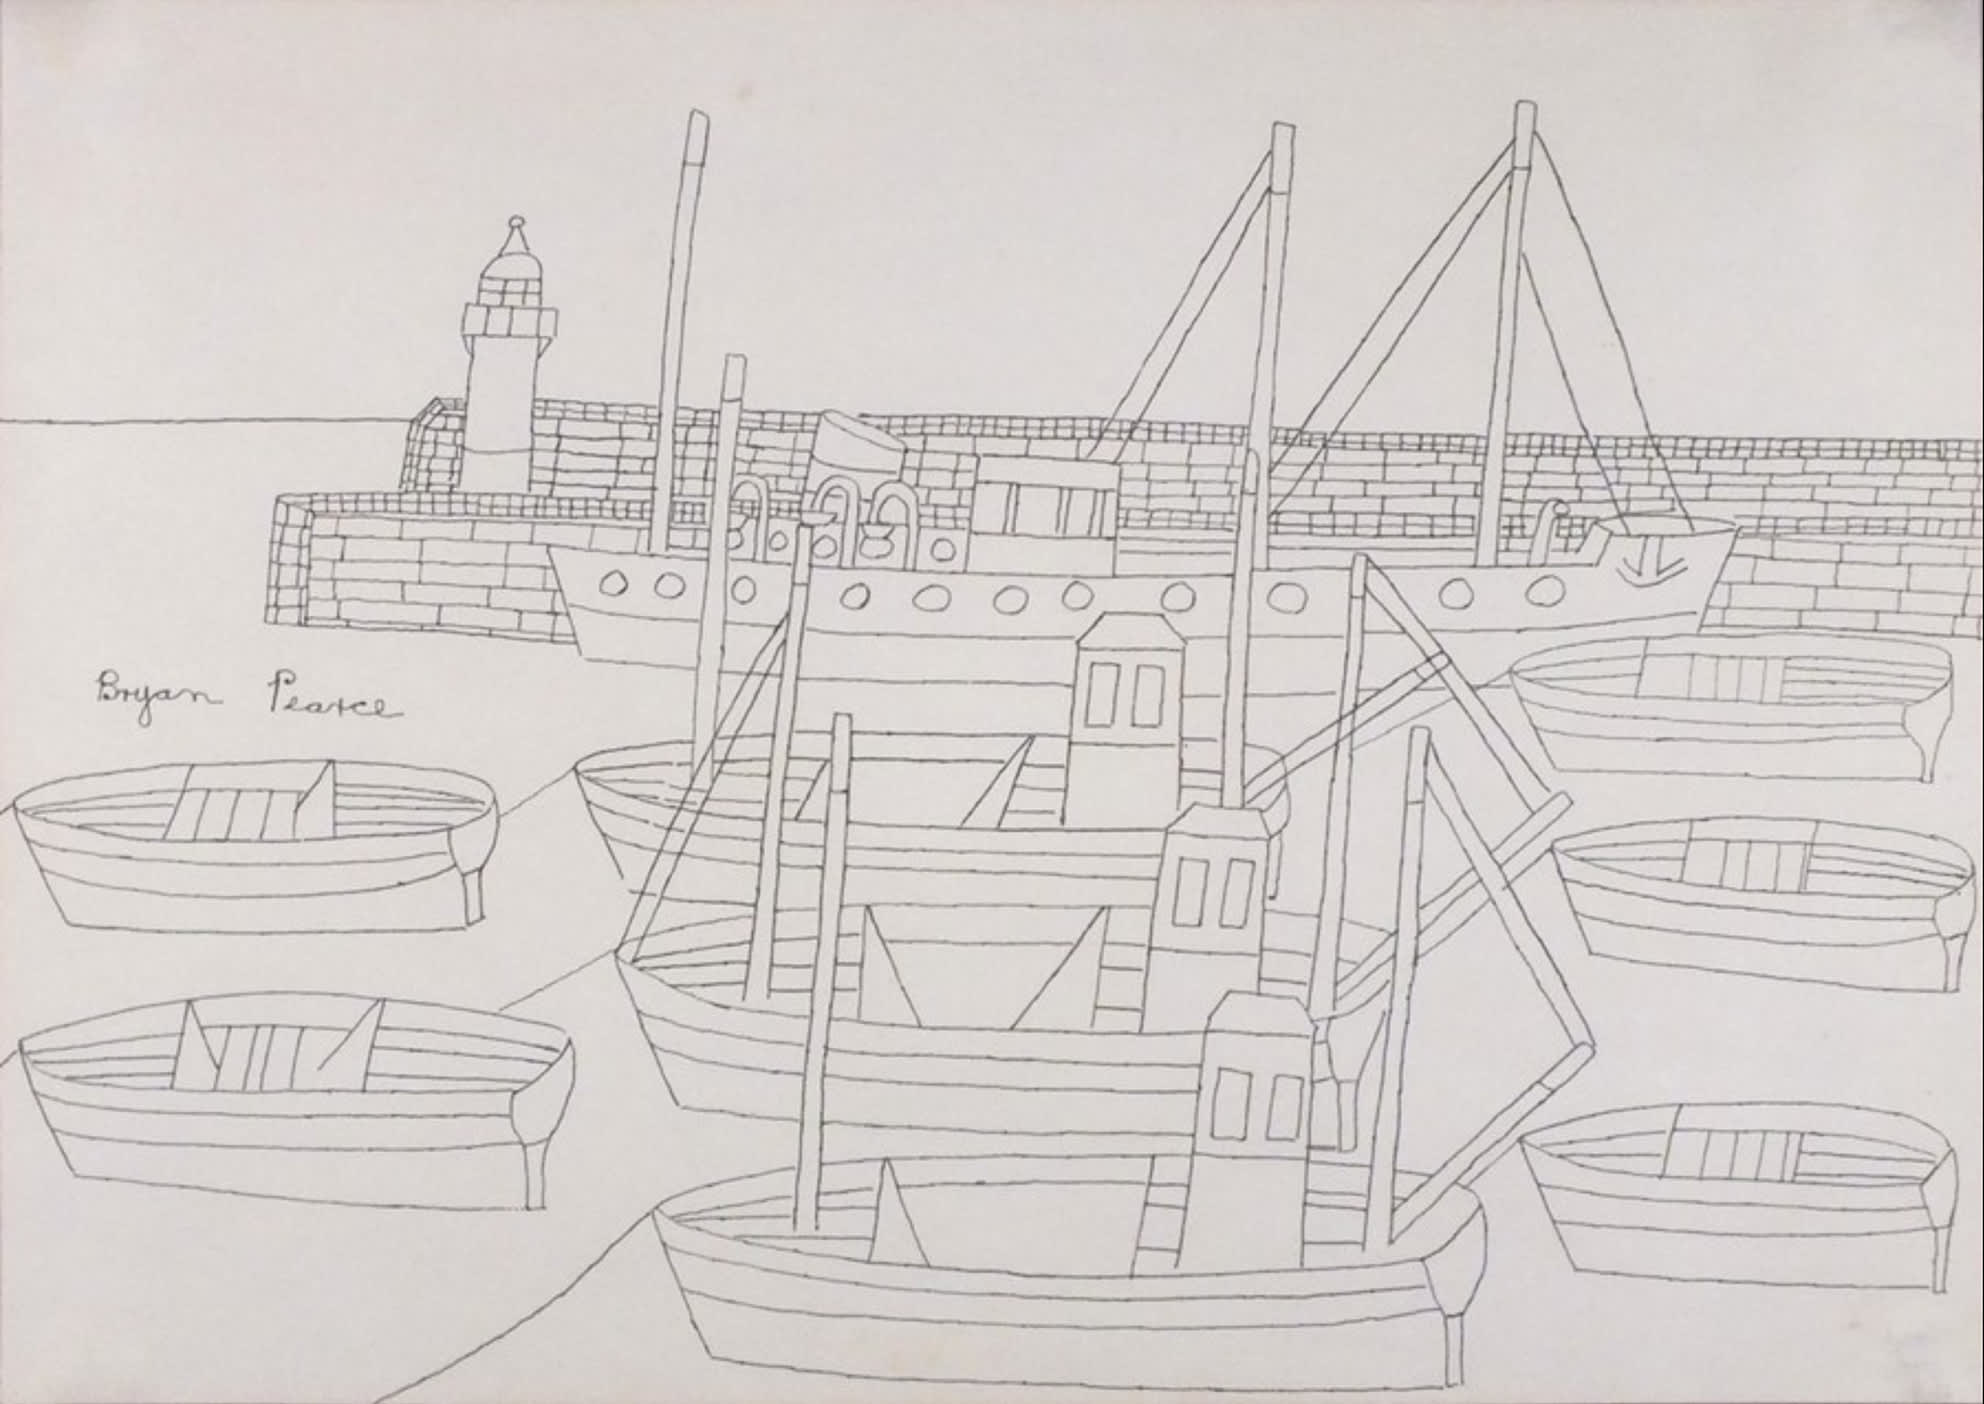 """<span class=""""link fancybox-details-link""""><a href=""""/artists/85-bryan-pearce/works/8055-bryan-pearce-the-stone-boat-newlyn-1972/"""">View Detail Page</a></span><div class=""""artist""""><strong>Bryan Pearce</strong></div> 1929-2007 <div class=""""title""""><em>The Stone Boat, Newlyn</em>, 1972</div> <div class=""""signed_and_dated"""">signed by the artist mid-left,<br /> signed and tilted on reverse</div> <div class=""""medium"""">pen and ink on paper</div> <div class=""""dimensions"""">image size: h 29 cm x w 42 cm<br /> framed size: h 50 x w 61 cm</div><div class=""""copyright_line"""">Copyright The Artist</div>"""